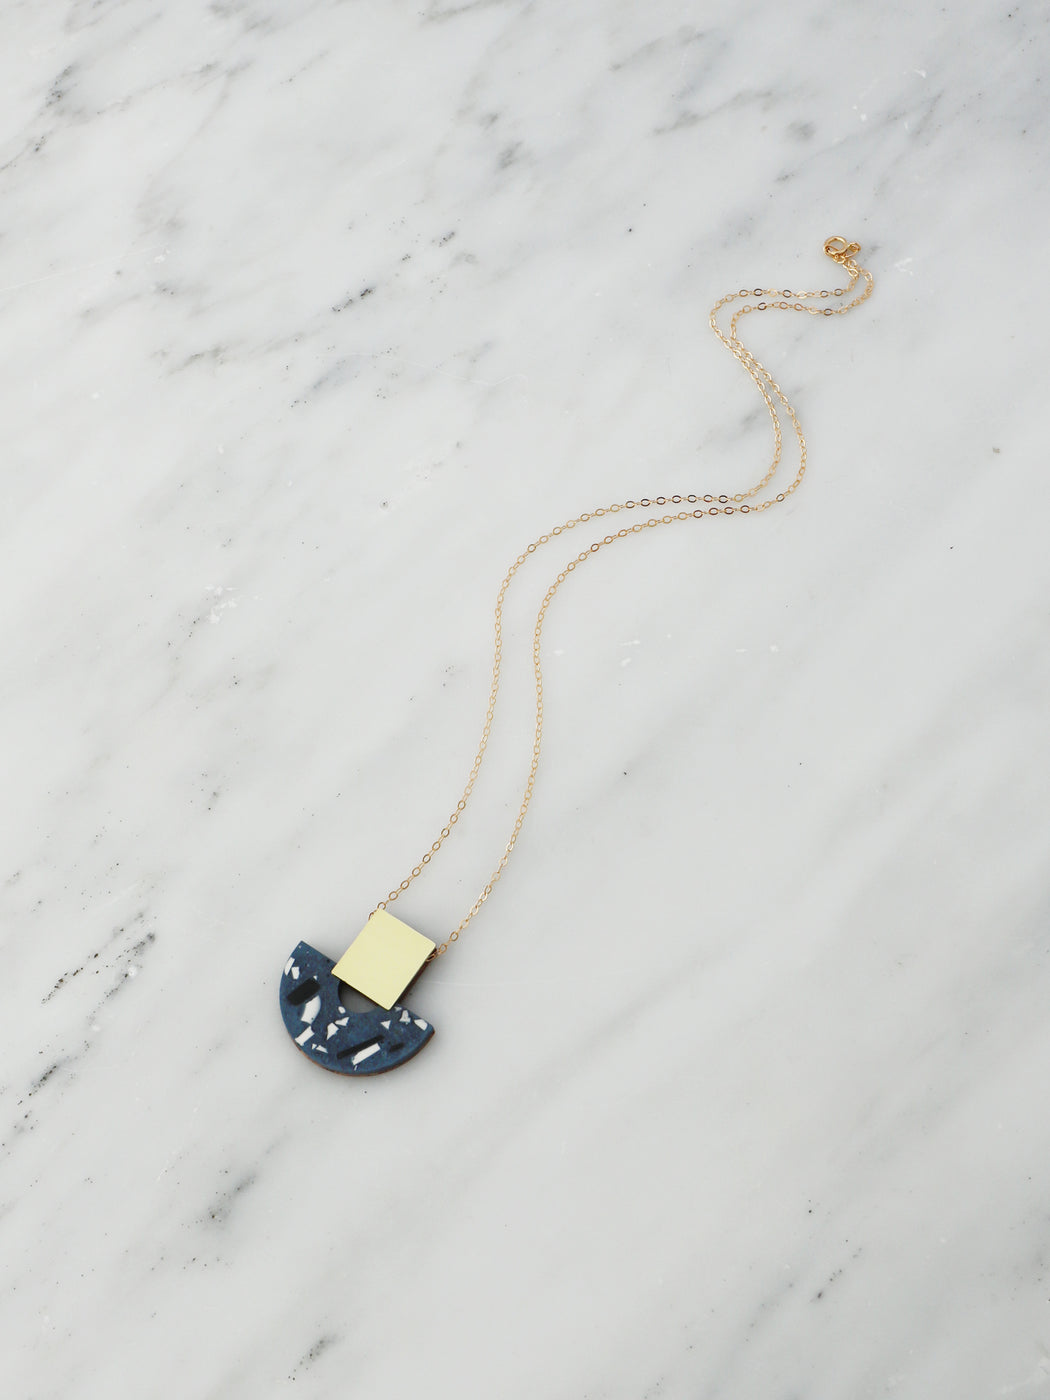 Odette Necklace in Dark Blue Jesmonite